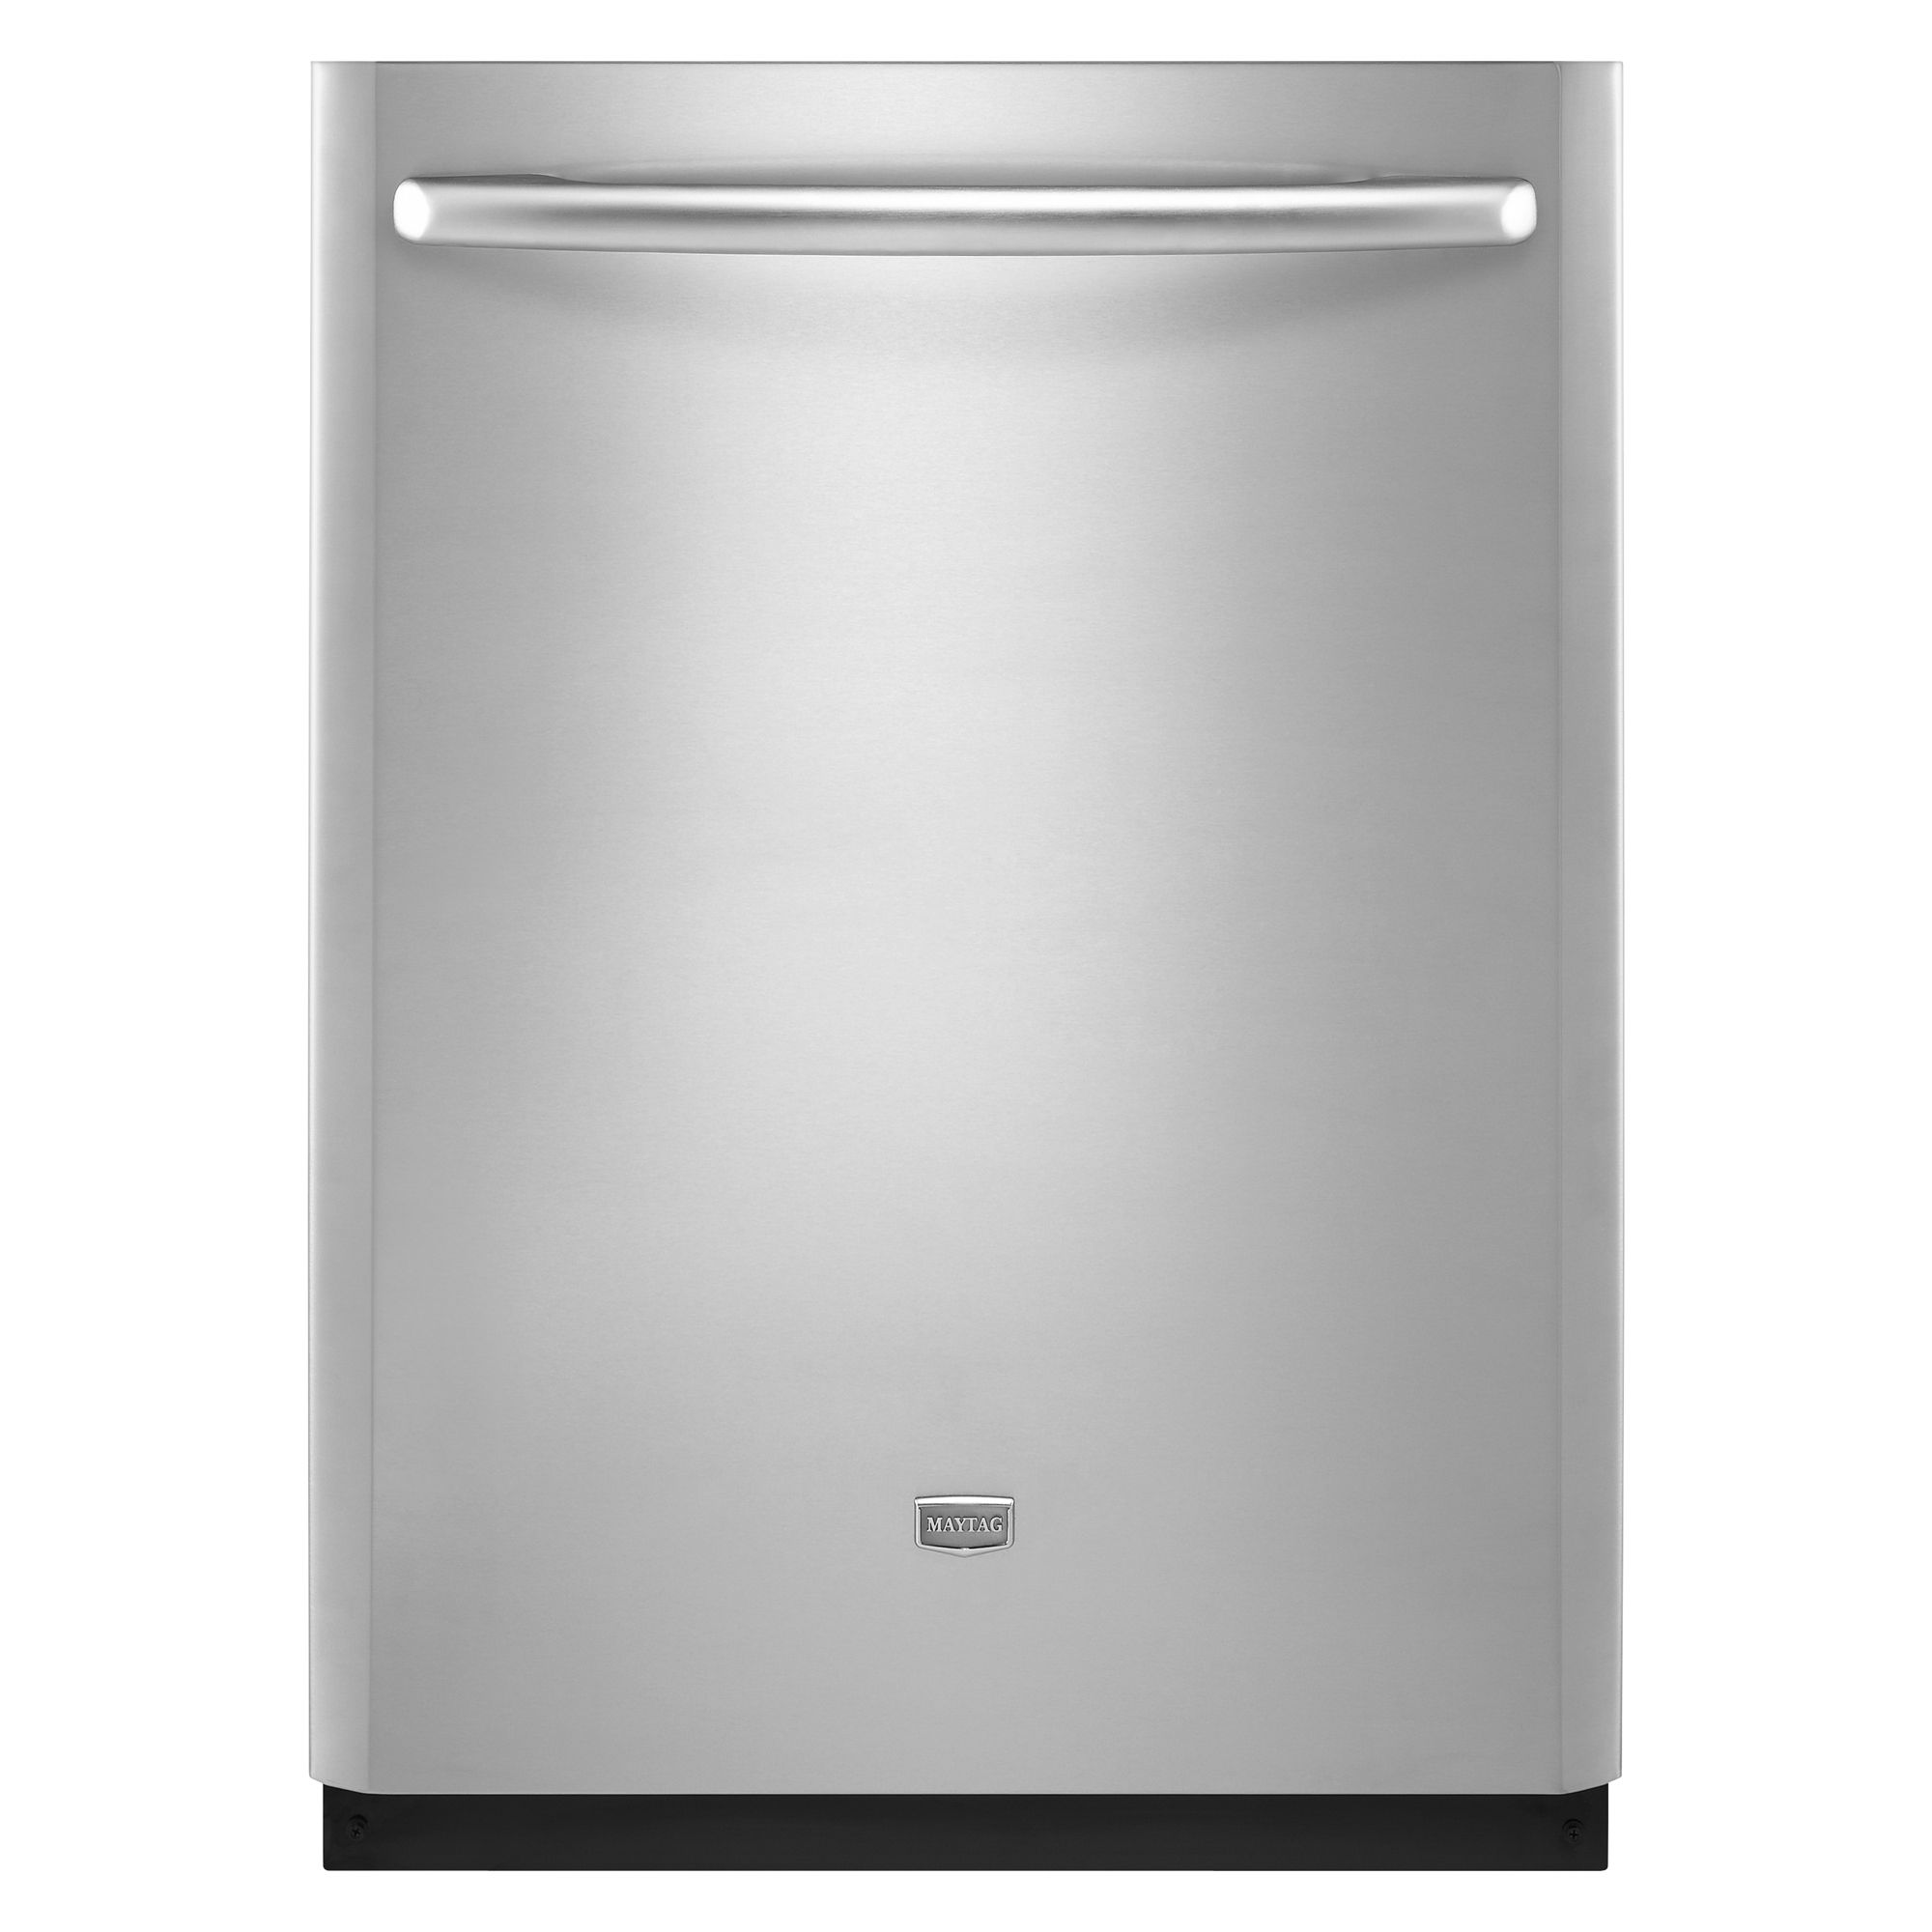 Maytag JetClean reg Plus 24 in Built-In Dishwasher with Fully Integrated Door - Stainless Steel